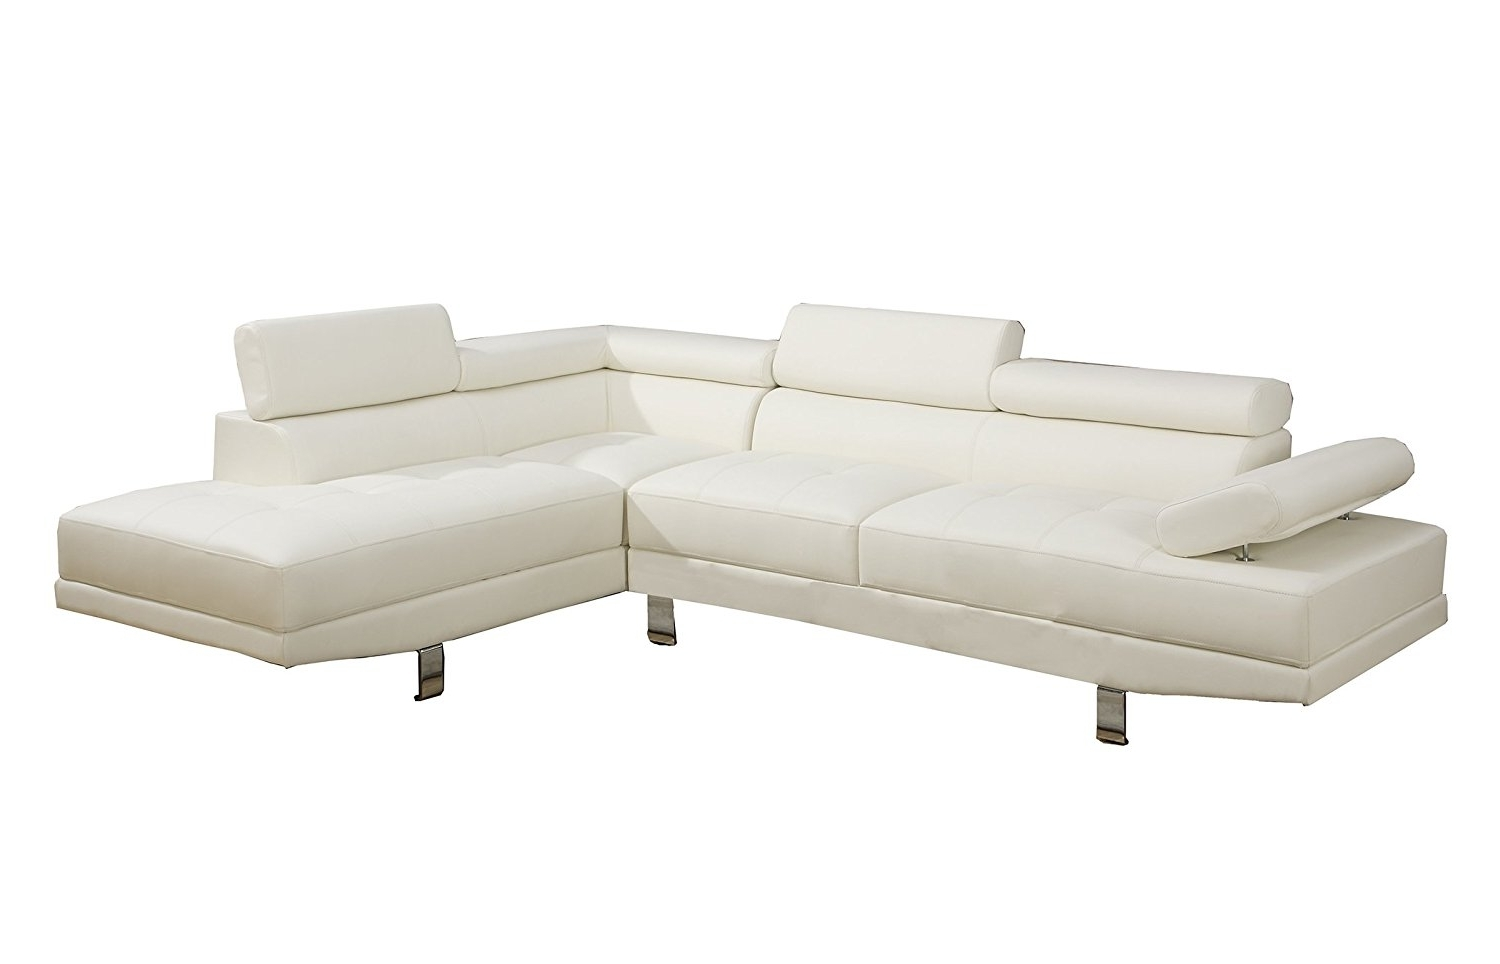 Latest White Leather Sectionals With Chaise For Amazon: Poundex 2 Pieces Faux Leather Sectional Right Chaise (View 7 of 15)